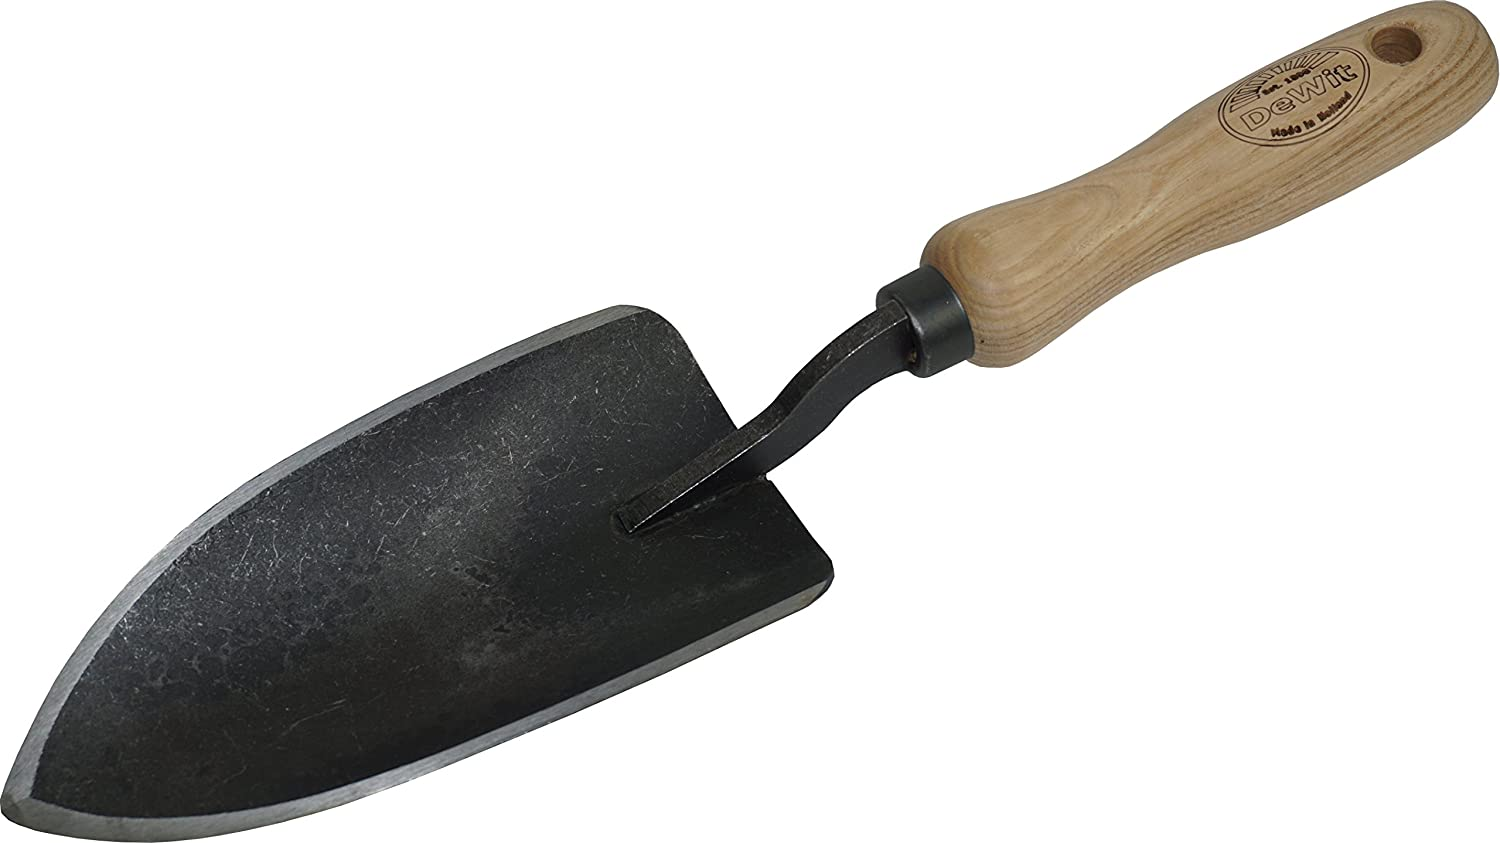 Tierra Garden Dewit Welldone Planting Trowel, Garden Tool for Roots and Planting